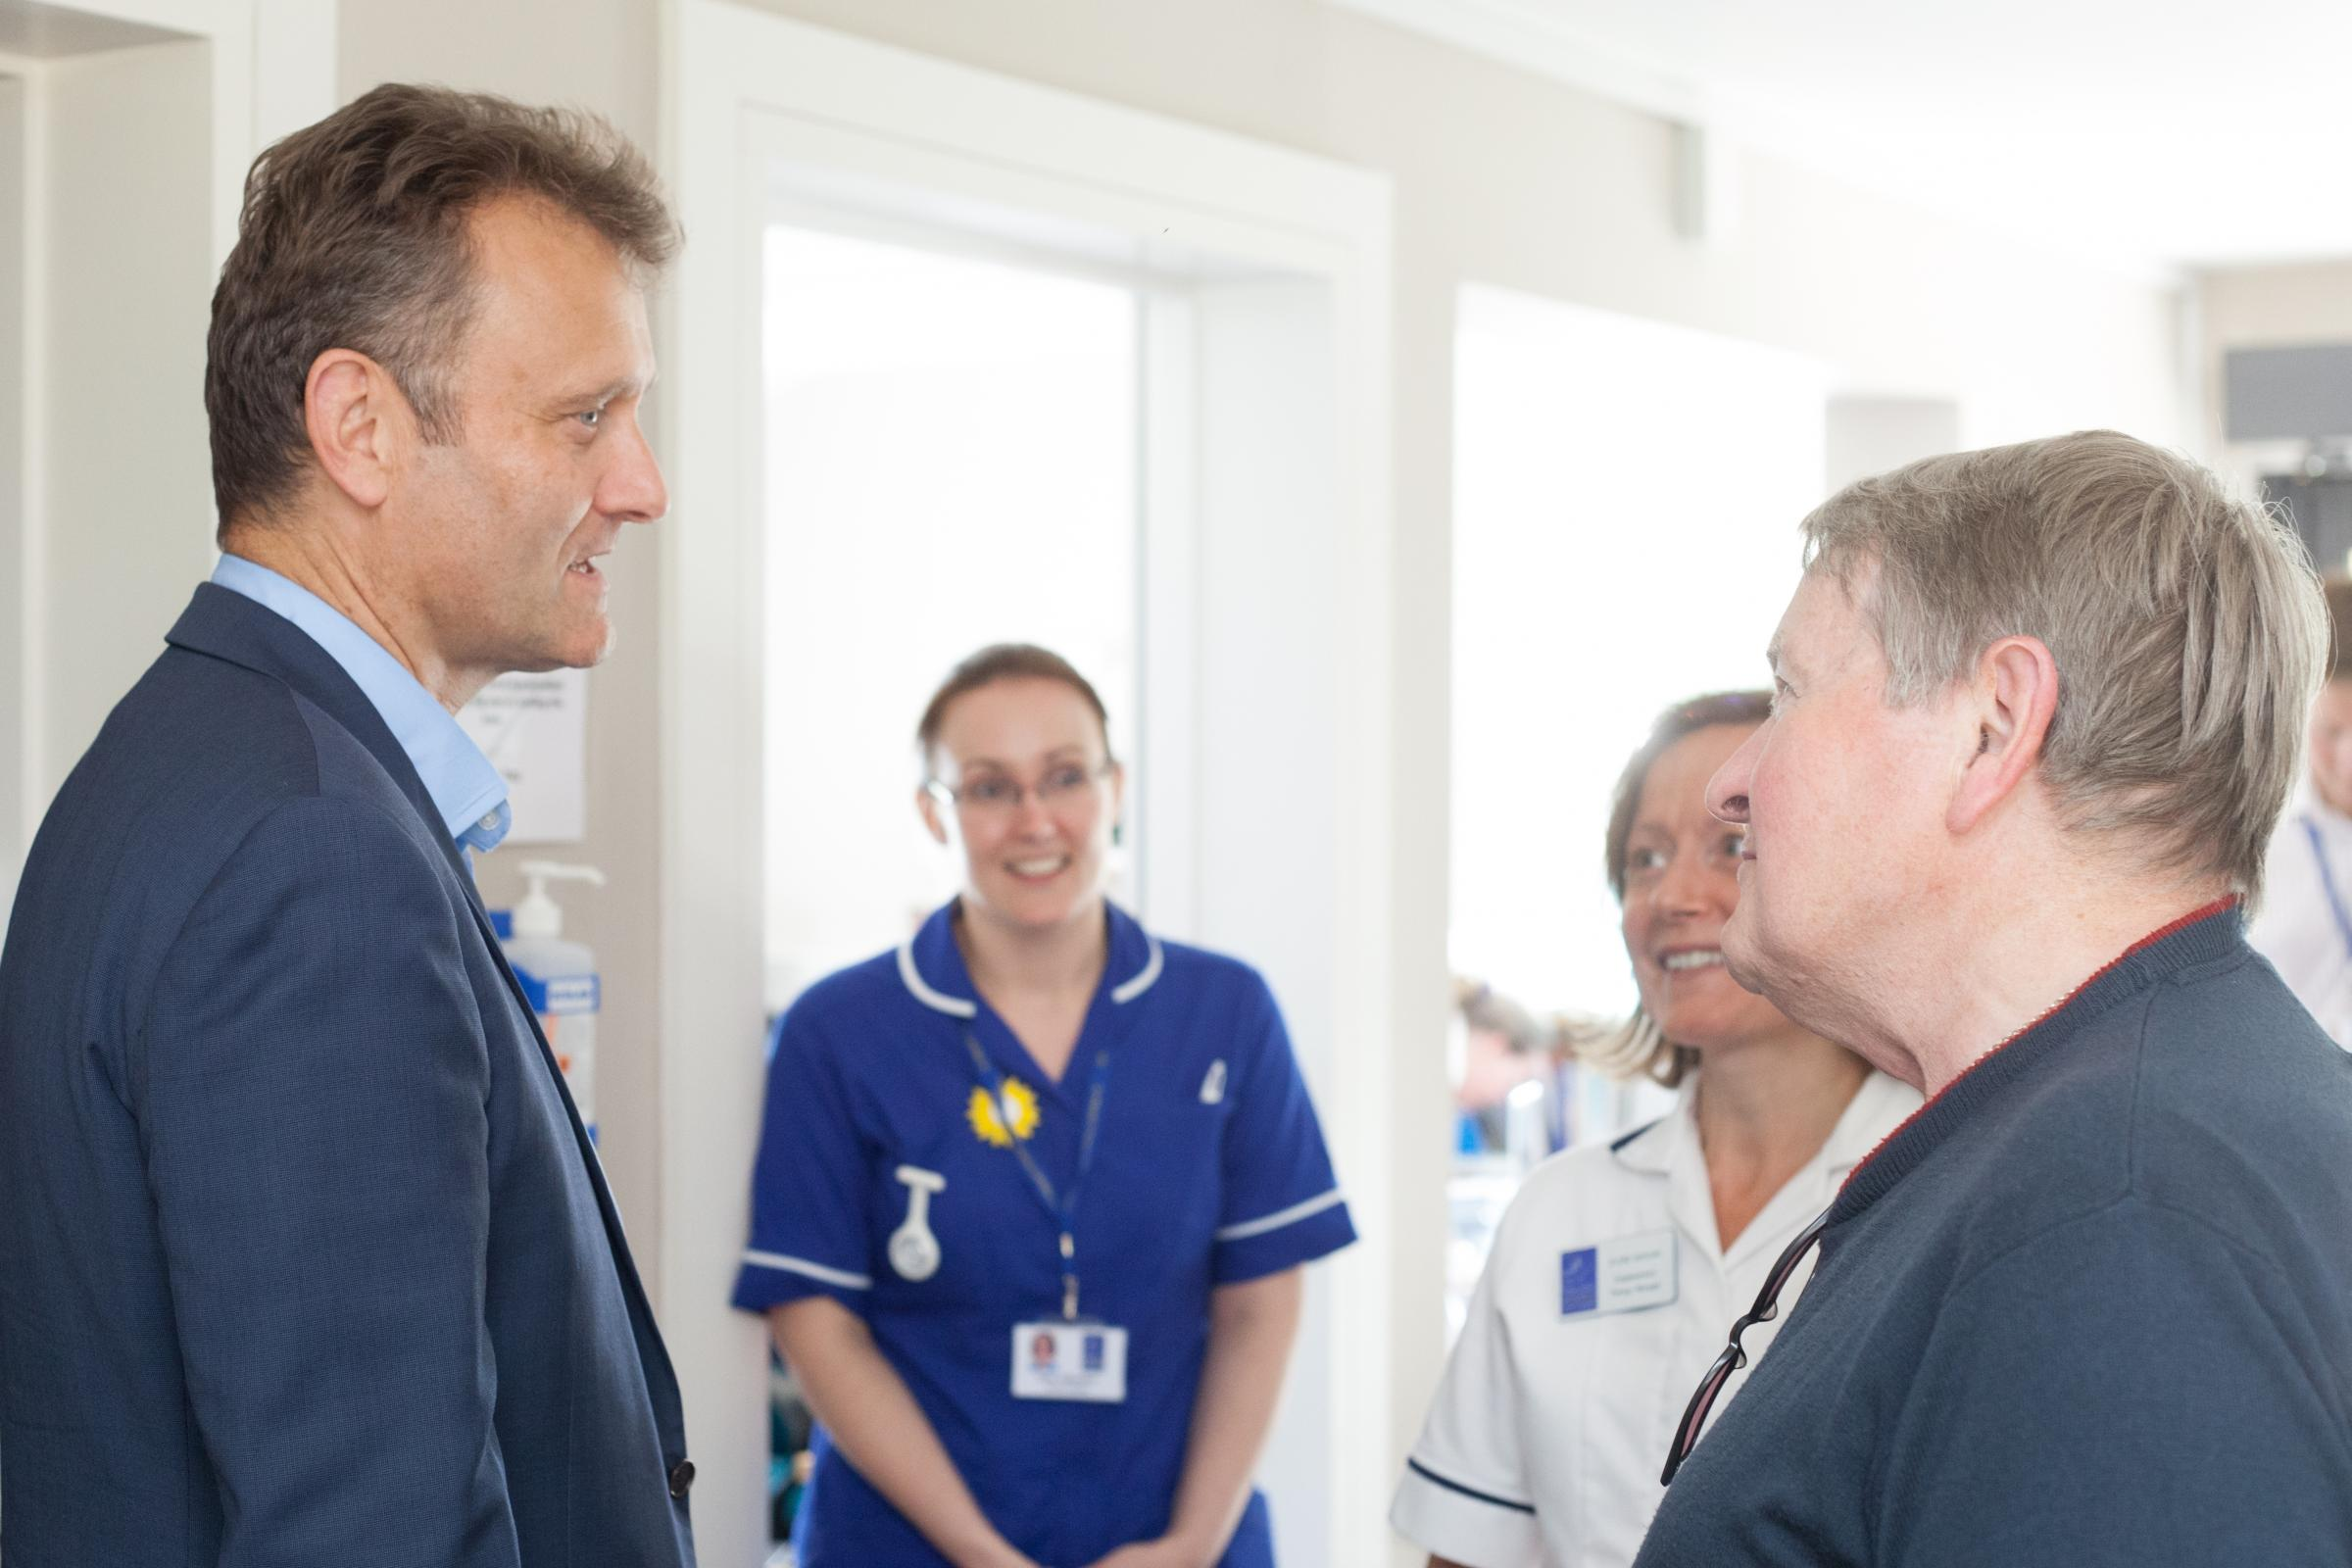 Hugh Dennis chats to members of the hospice staff